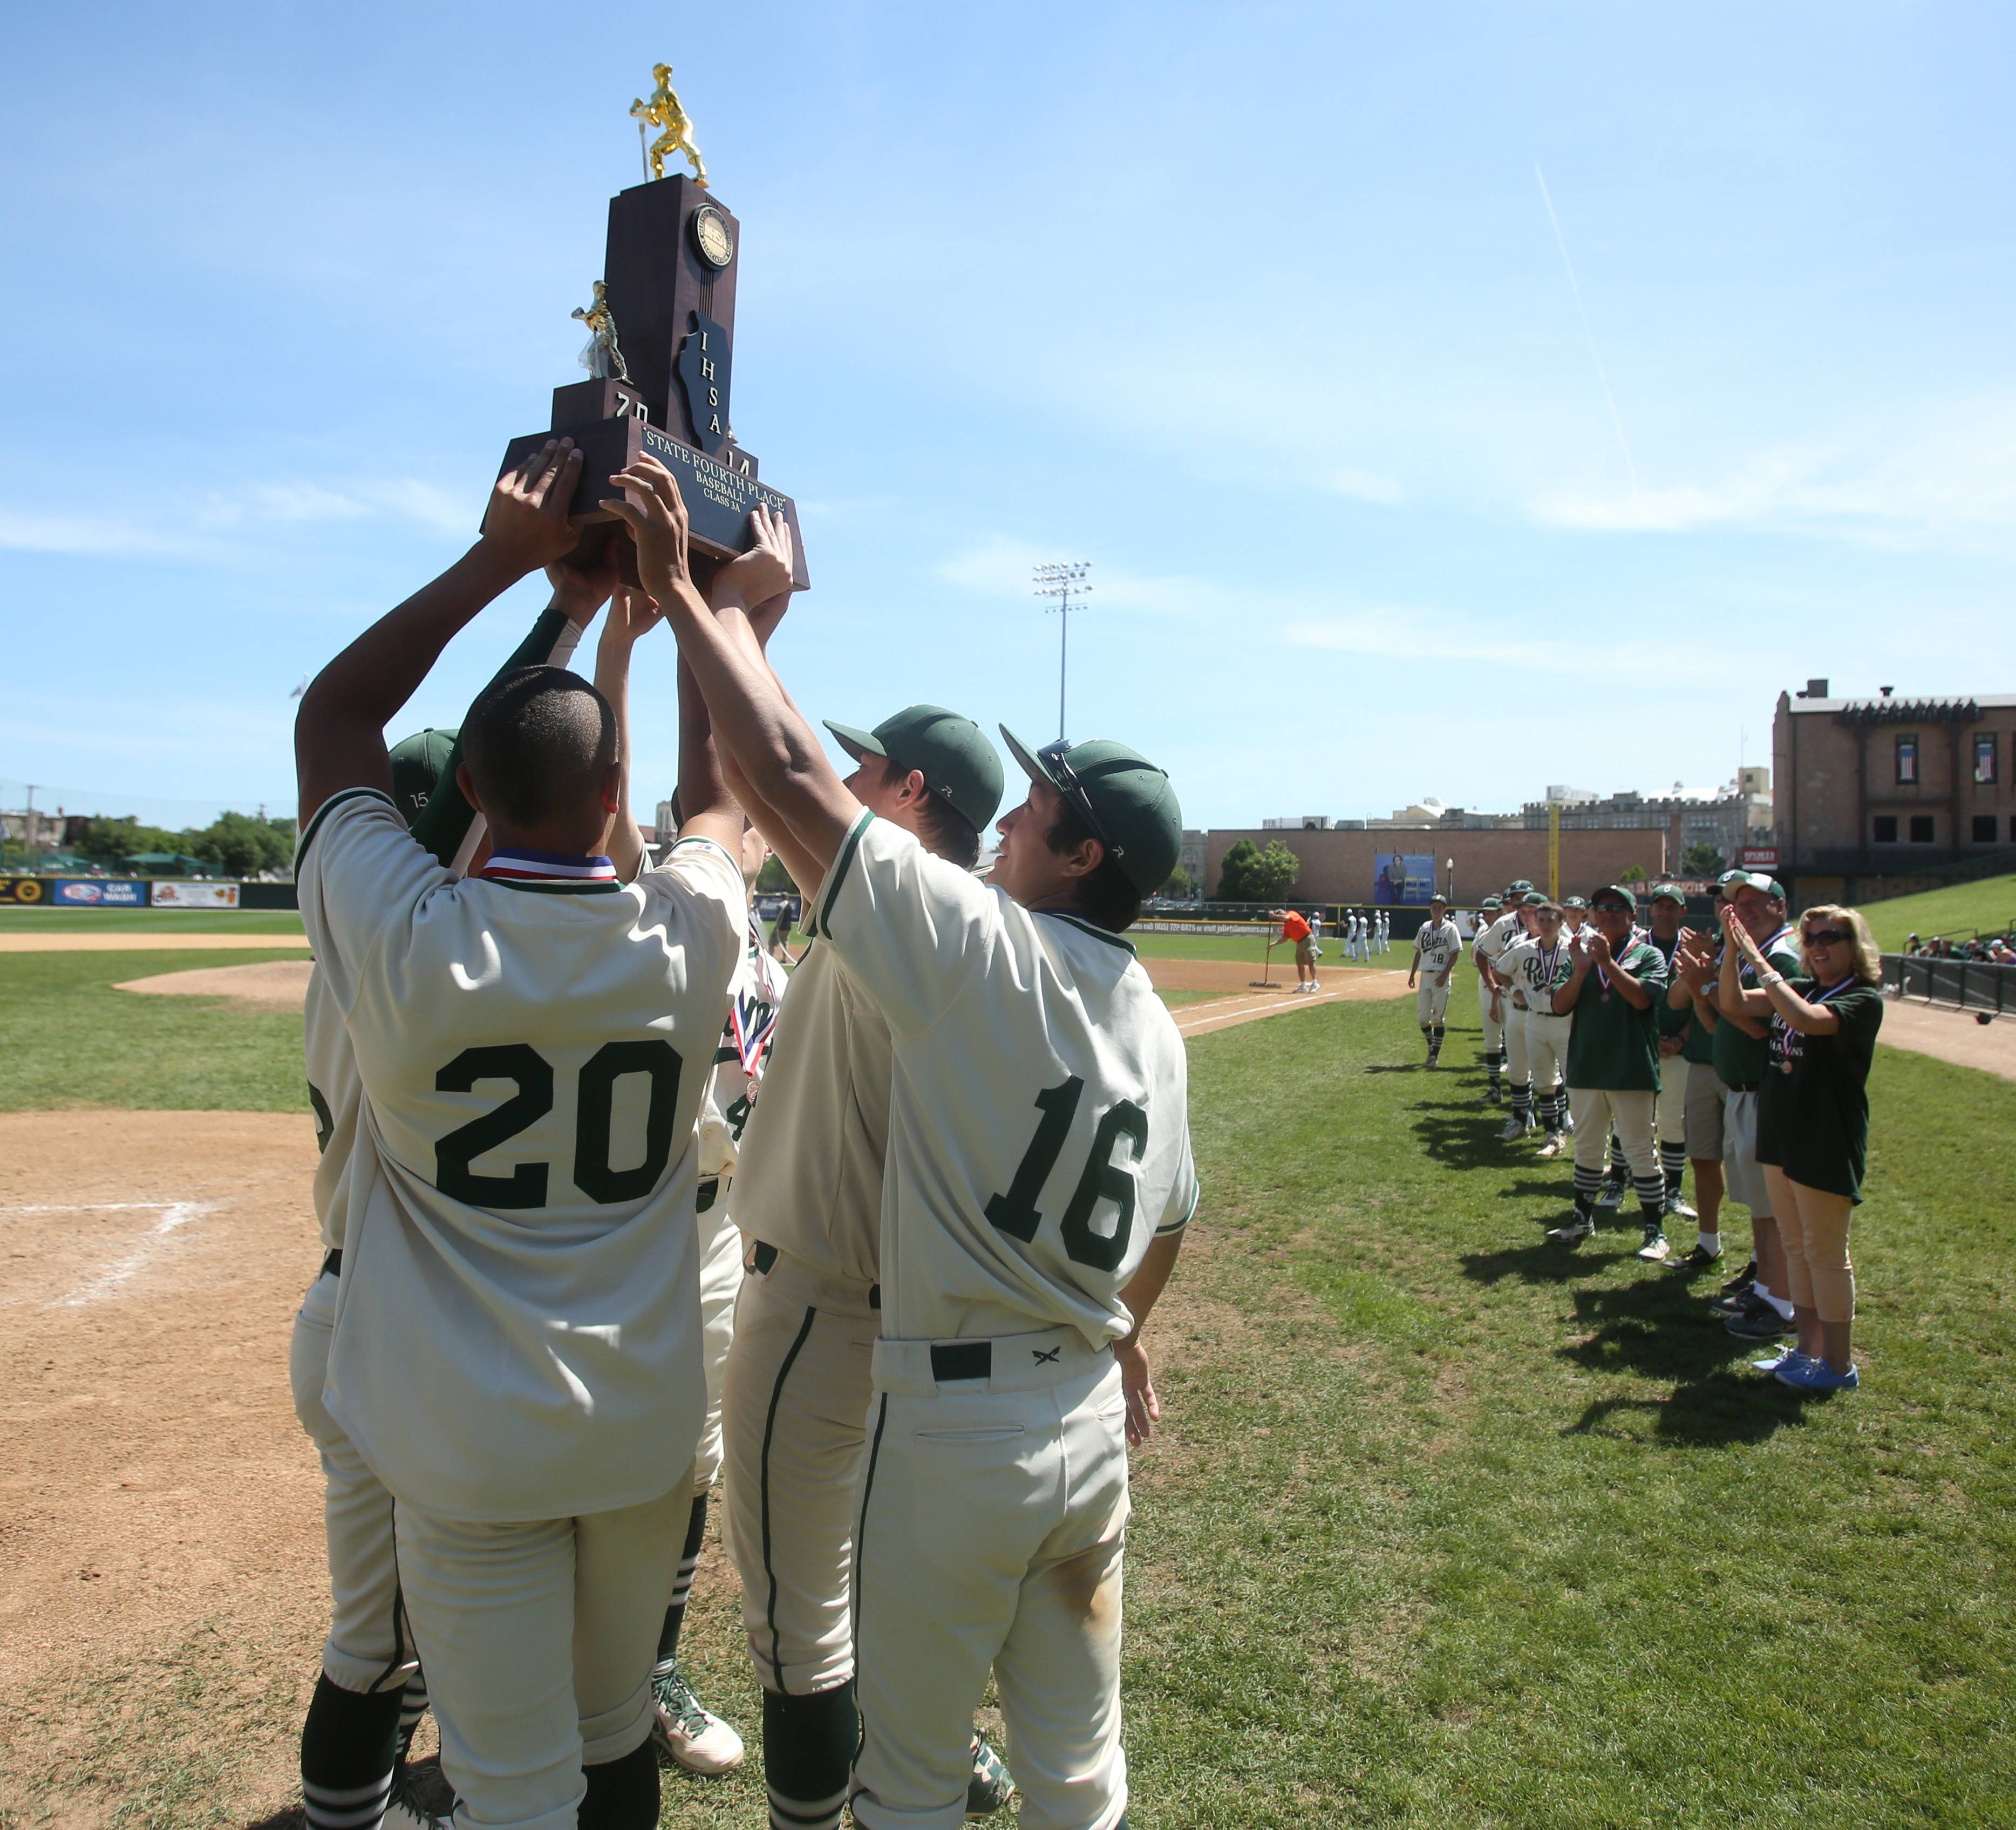 Grayslake Central players earned a fourth place finish in  Class 3A state baseball at Silver Cross Field in Joliet.